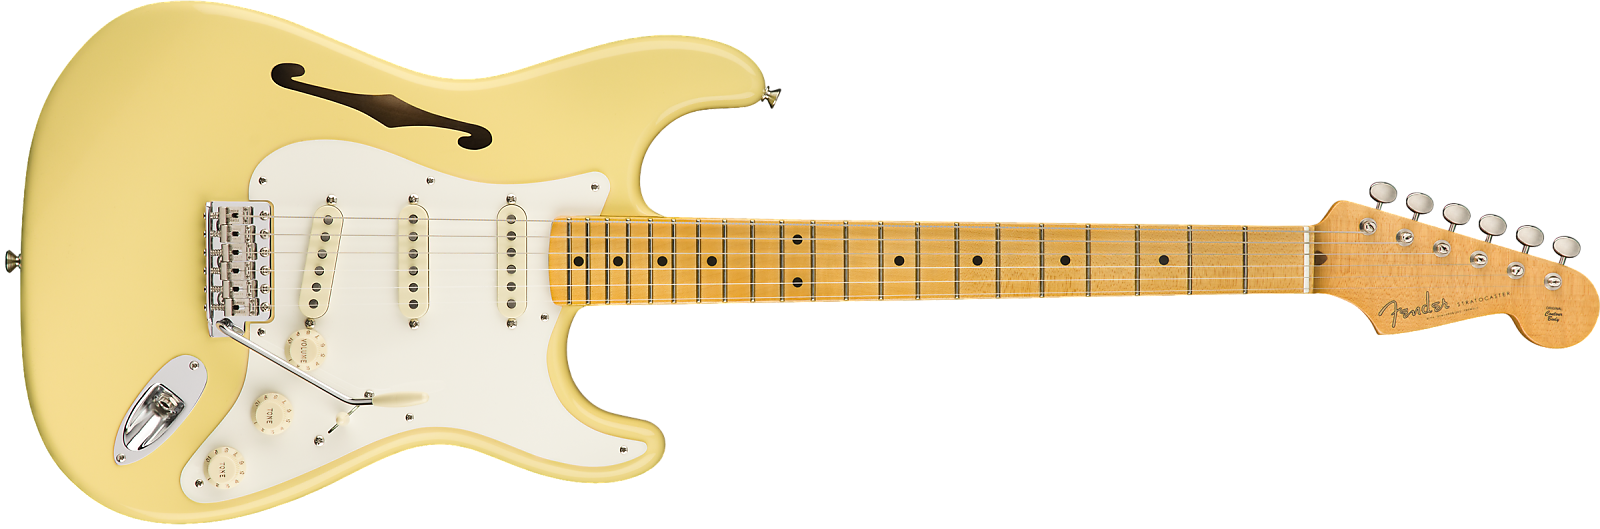 Fender 0113602741 ERIC JOHNSON SIGNATURE STRATOCASTER® THINLINE - Ships FREE Lower 48 States!